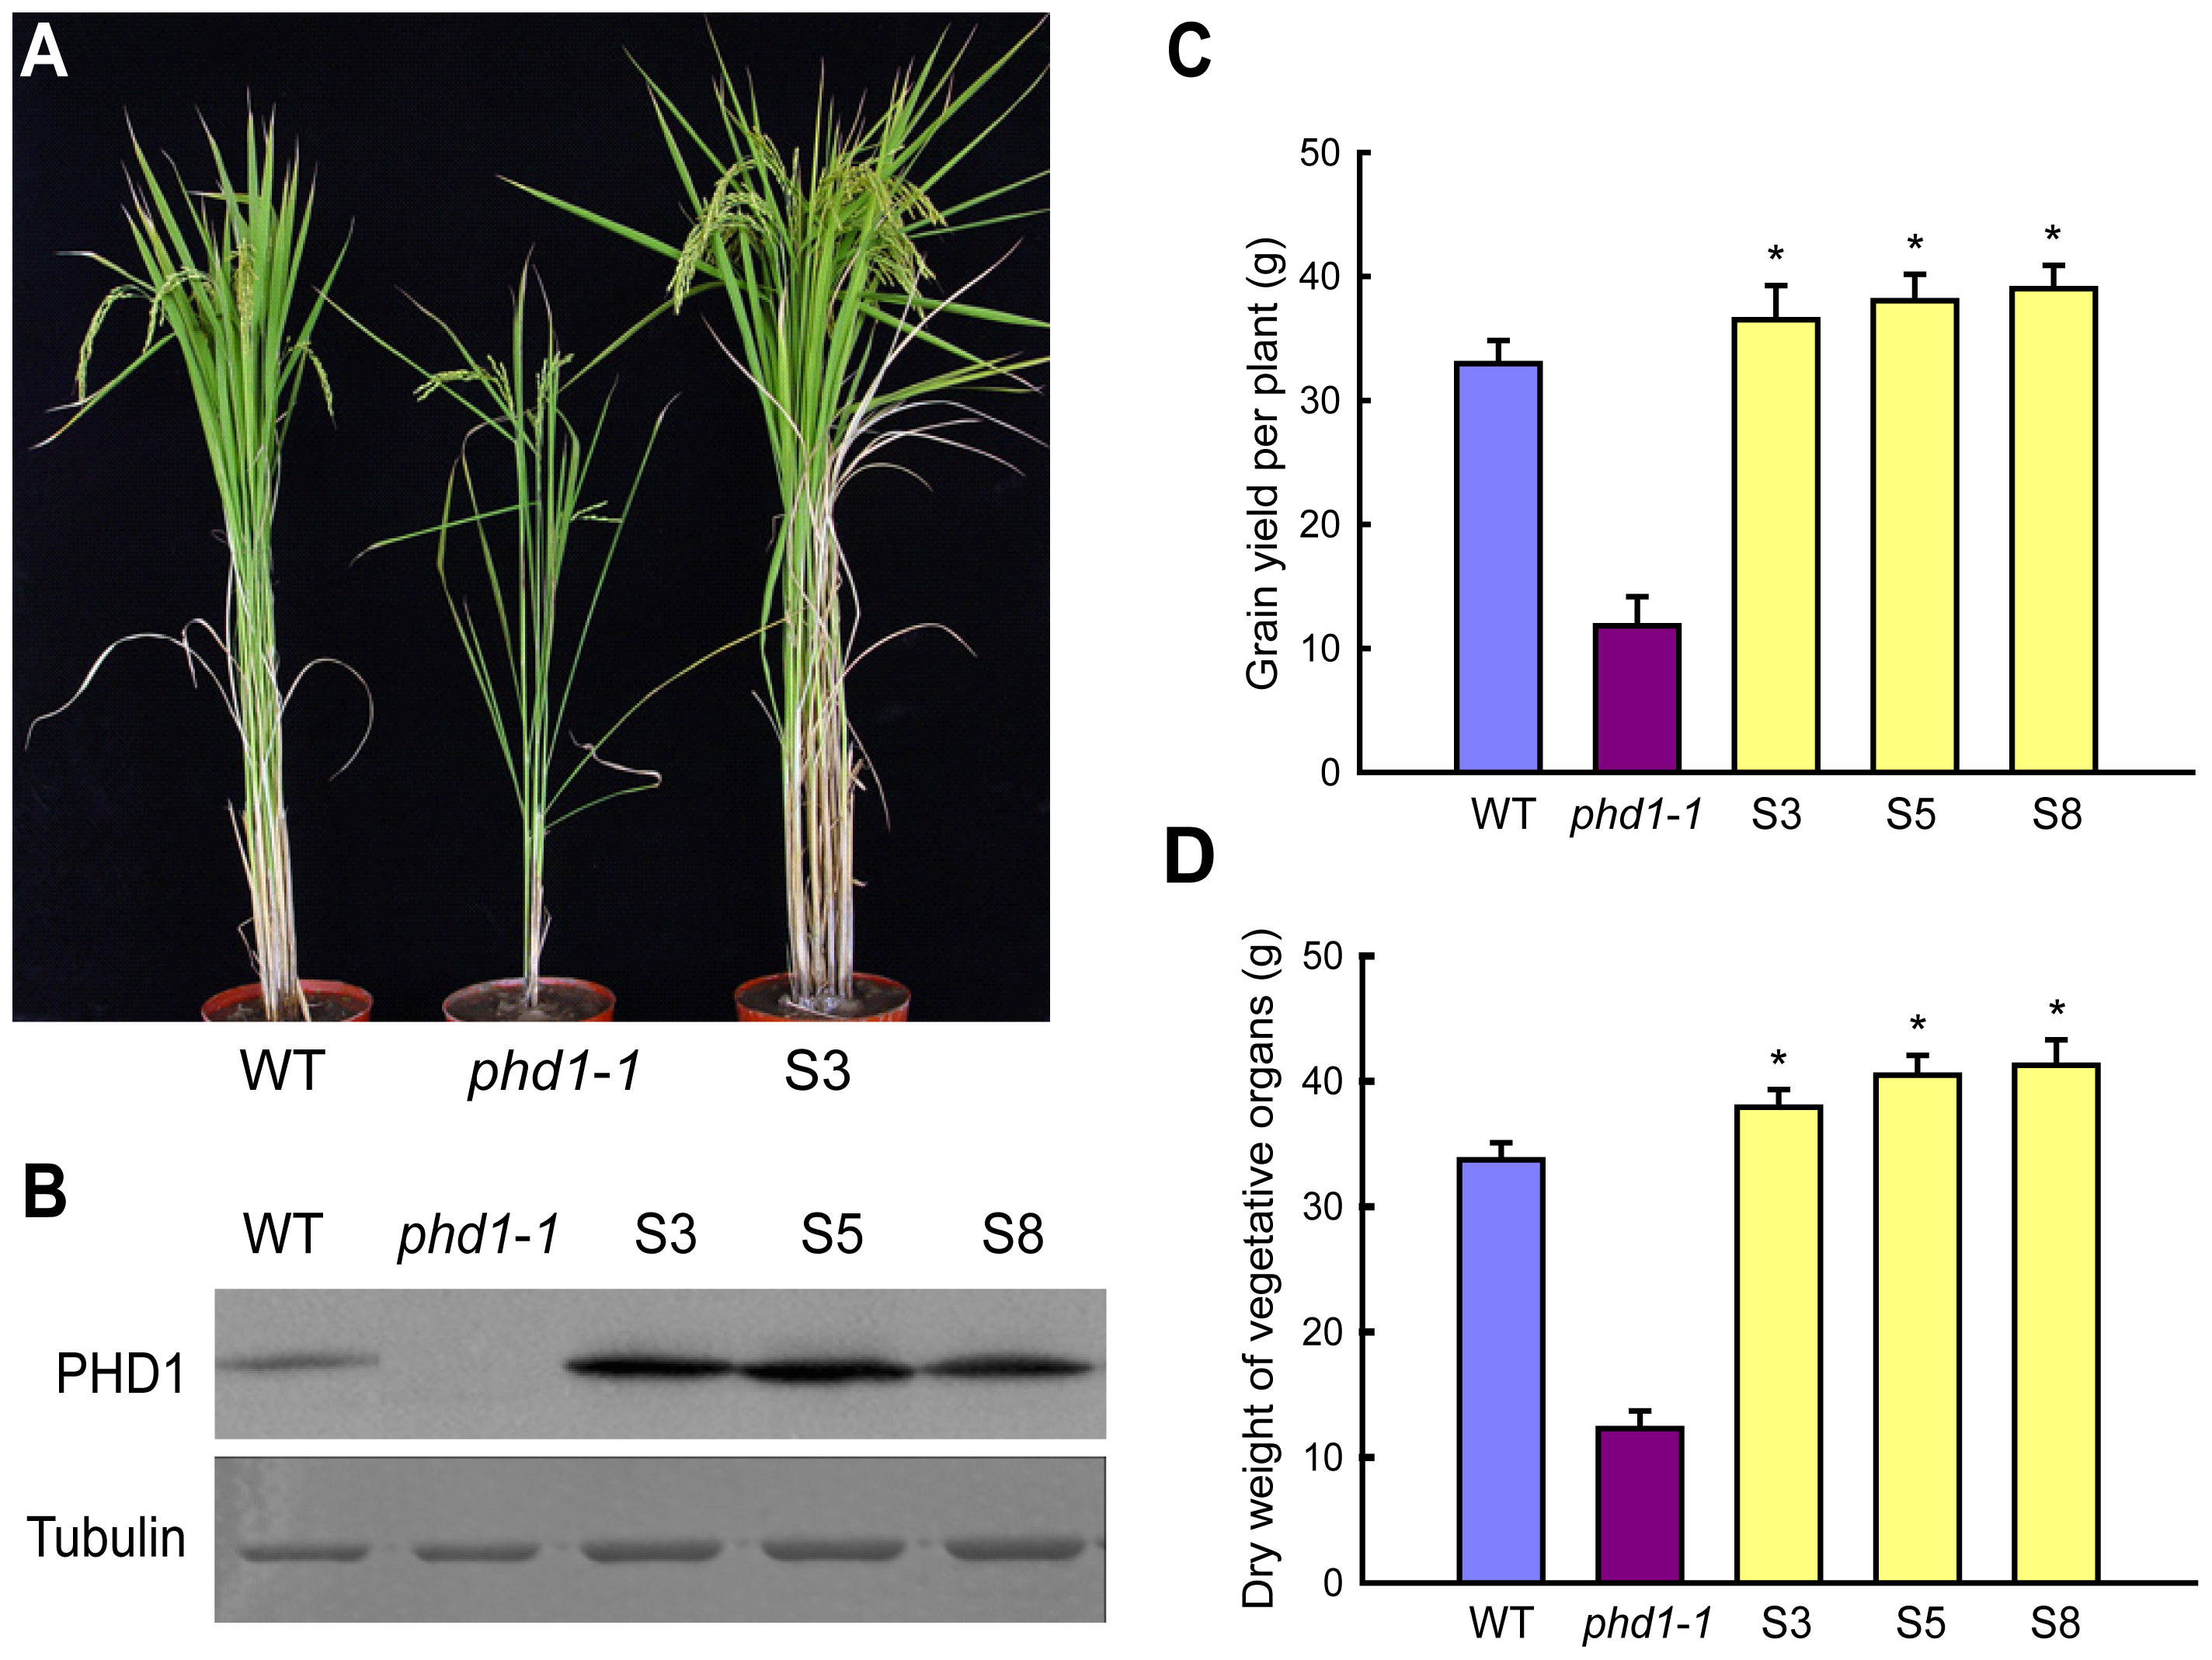 Agricultural traits of transgenic rice lines overexpressing <i>PHD1</i>.